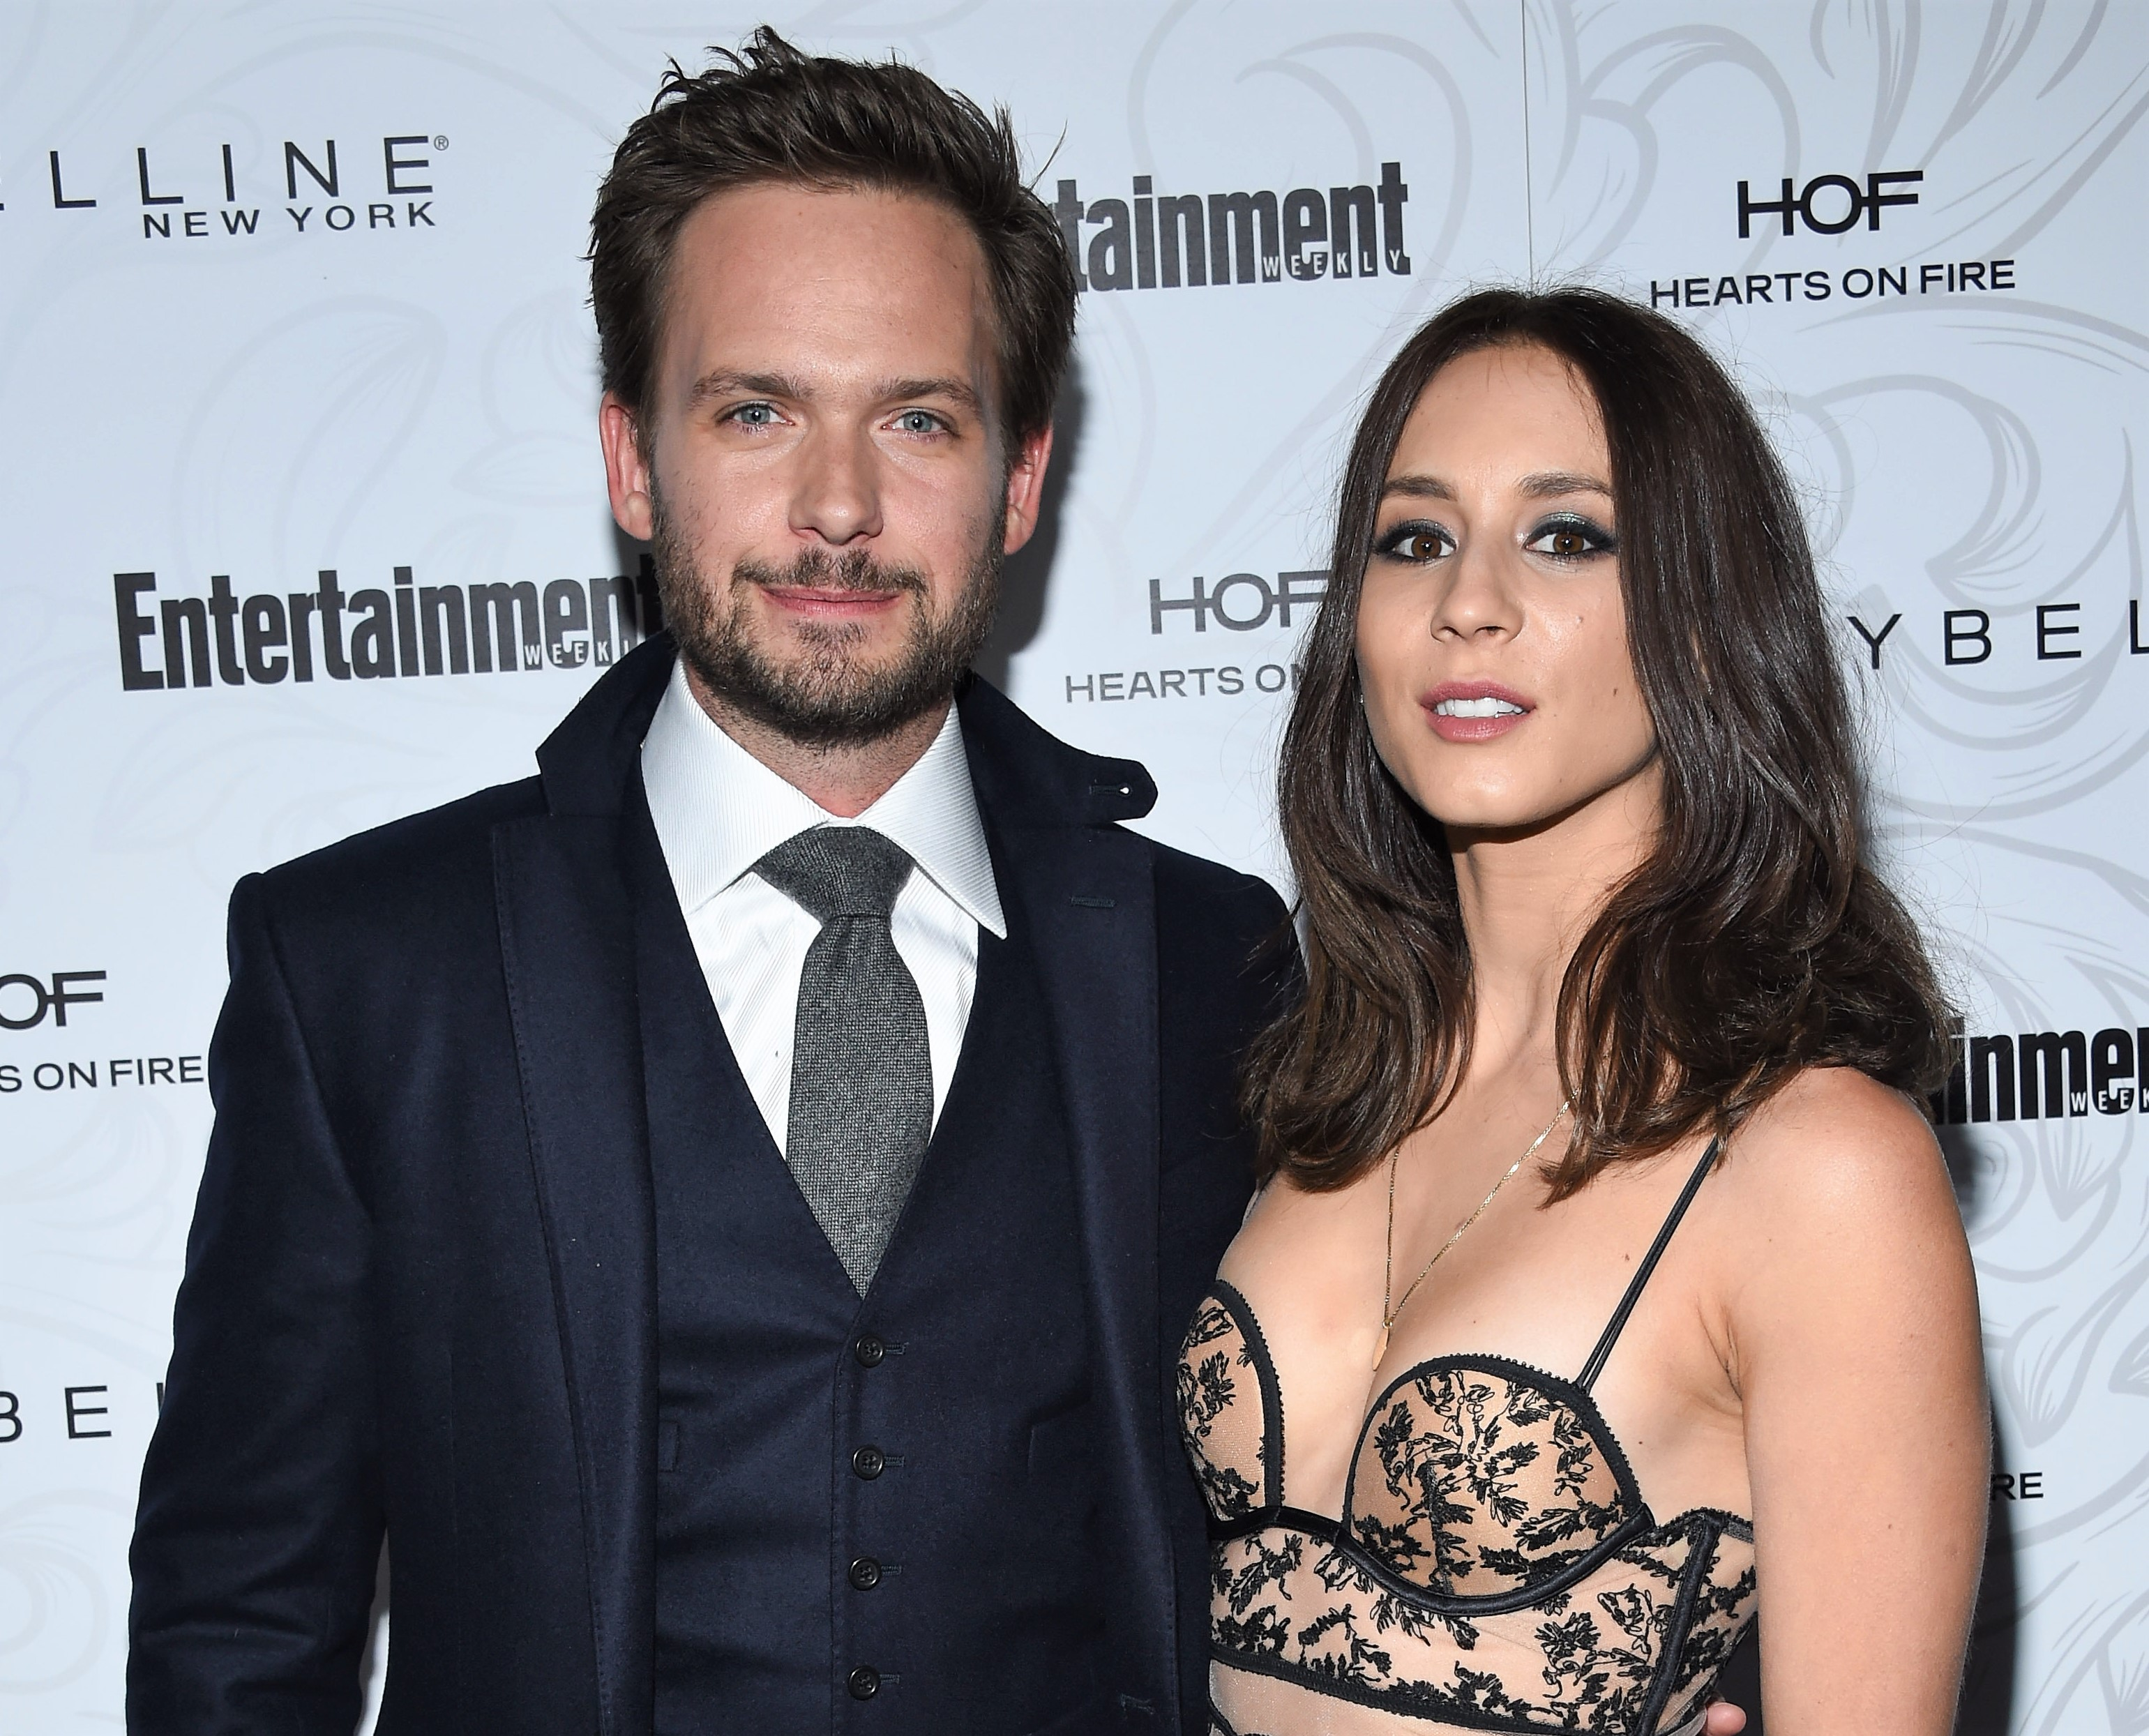 Troian Bellisario and Patrick J. Adams Welcome a Daughter